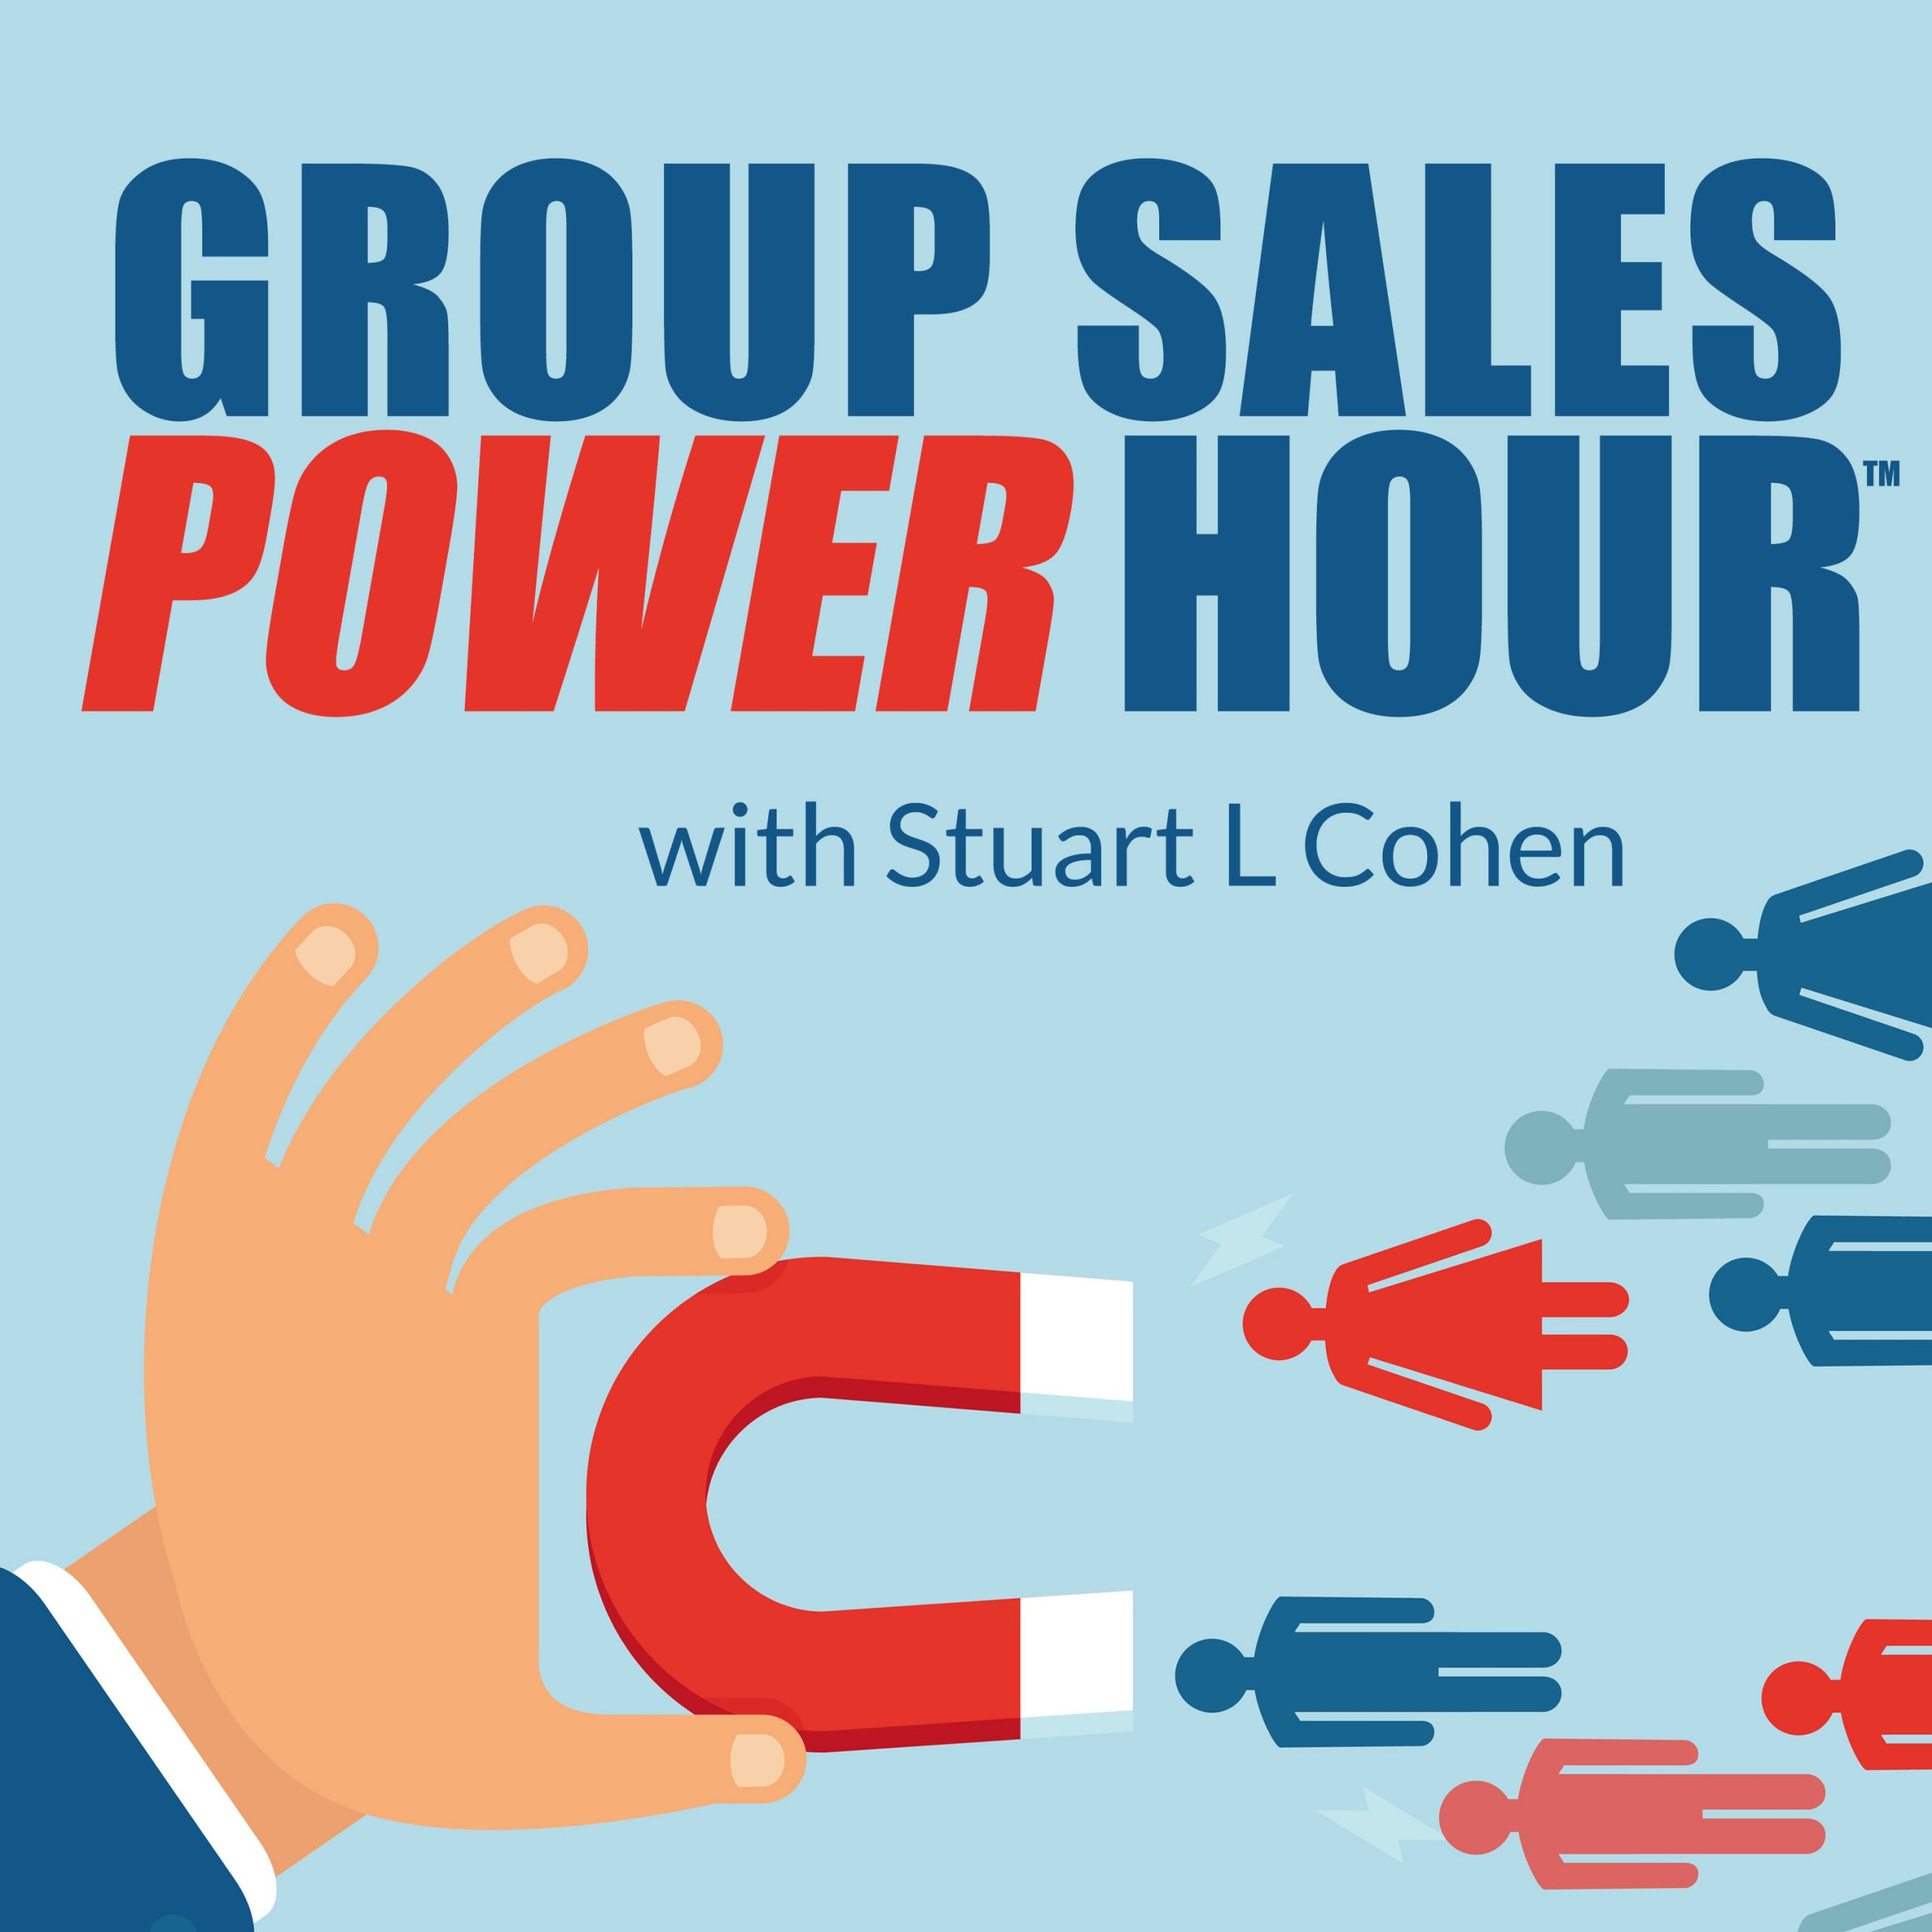 Group Sales Power Hour: Lead Magnets for Groups: The What, Why and How To with Catherine Heeg